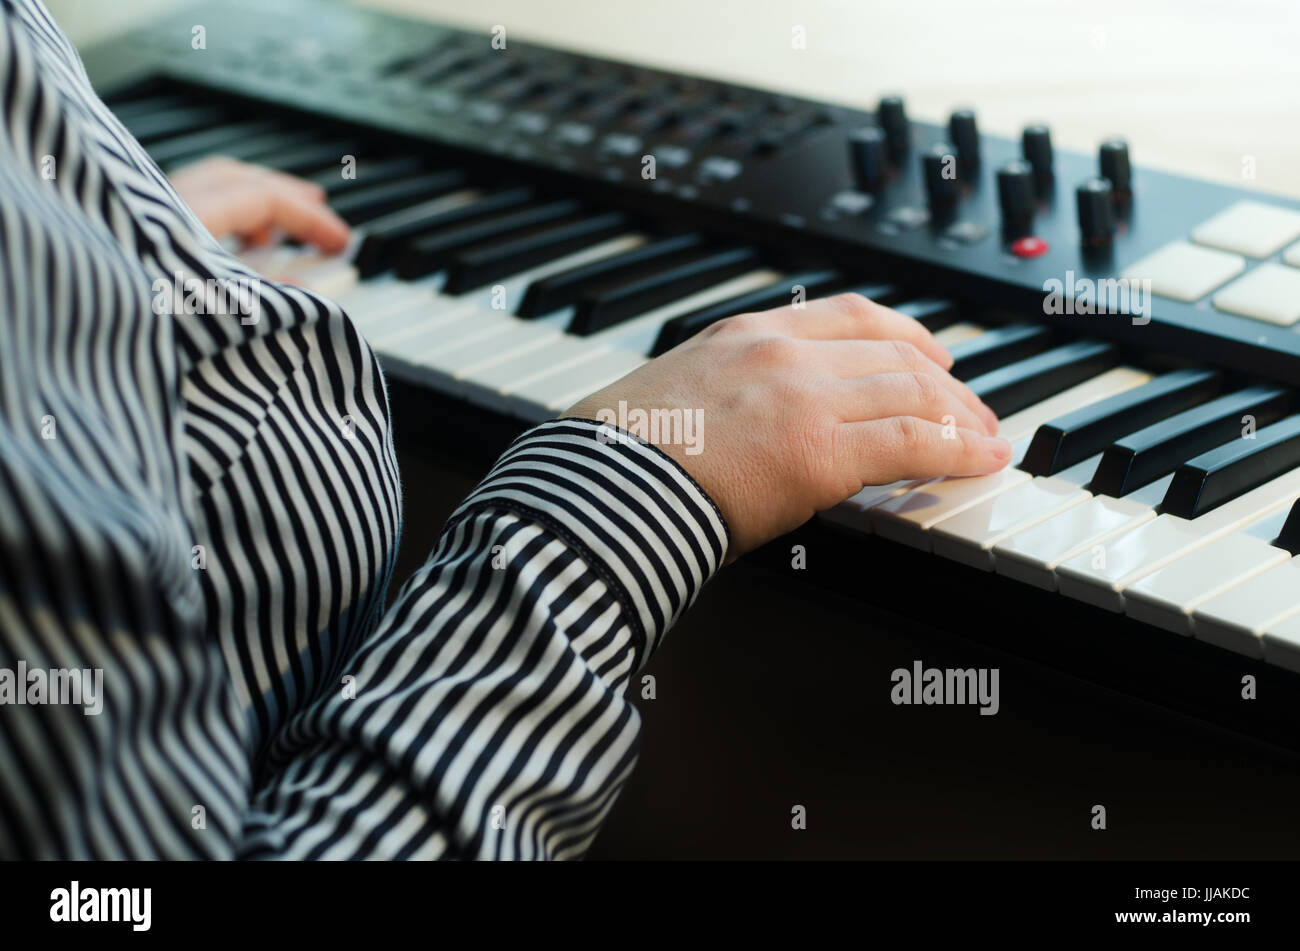 A woman in a striped shirt plays a synthesizer. In the frame the body. Side view. Light background - Stock Image